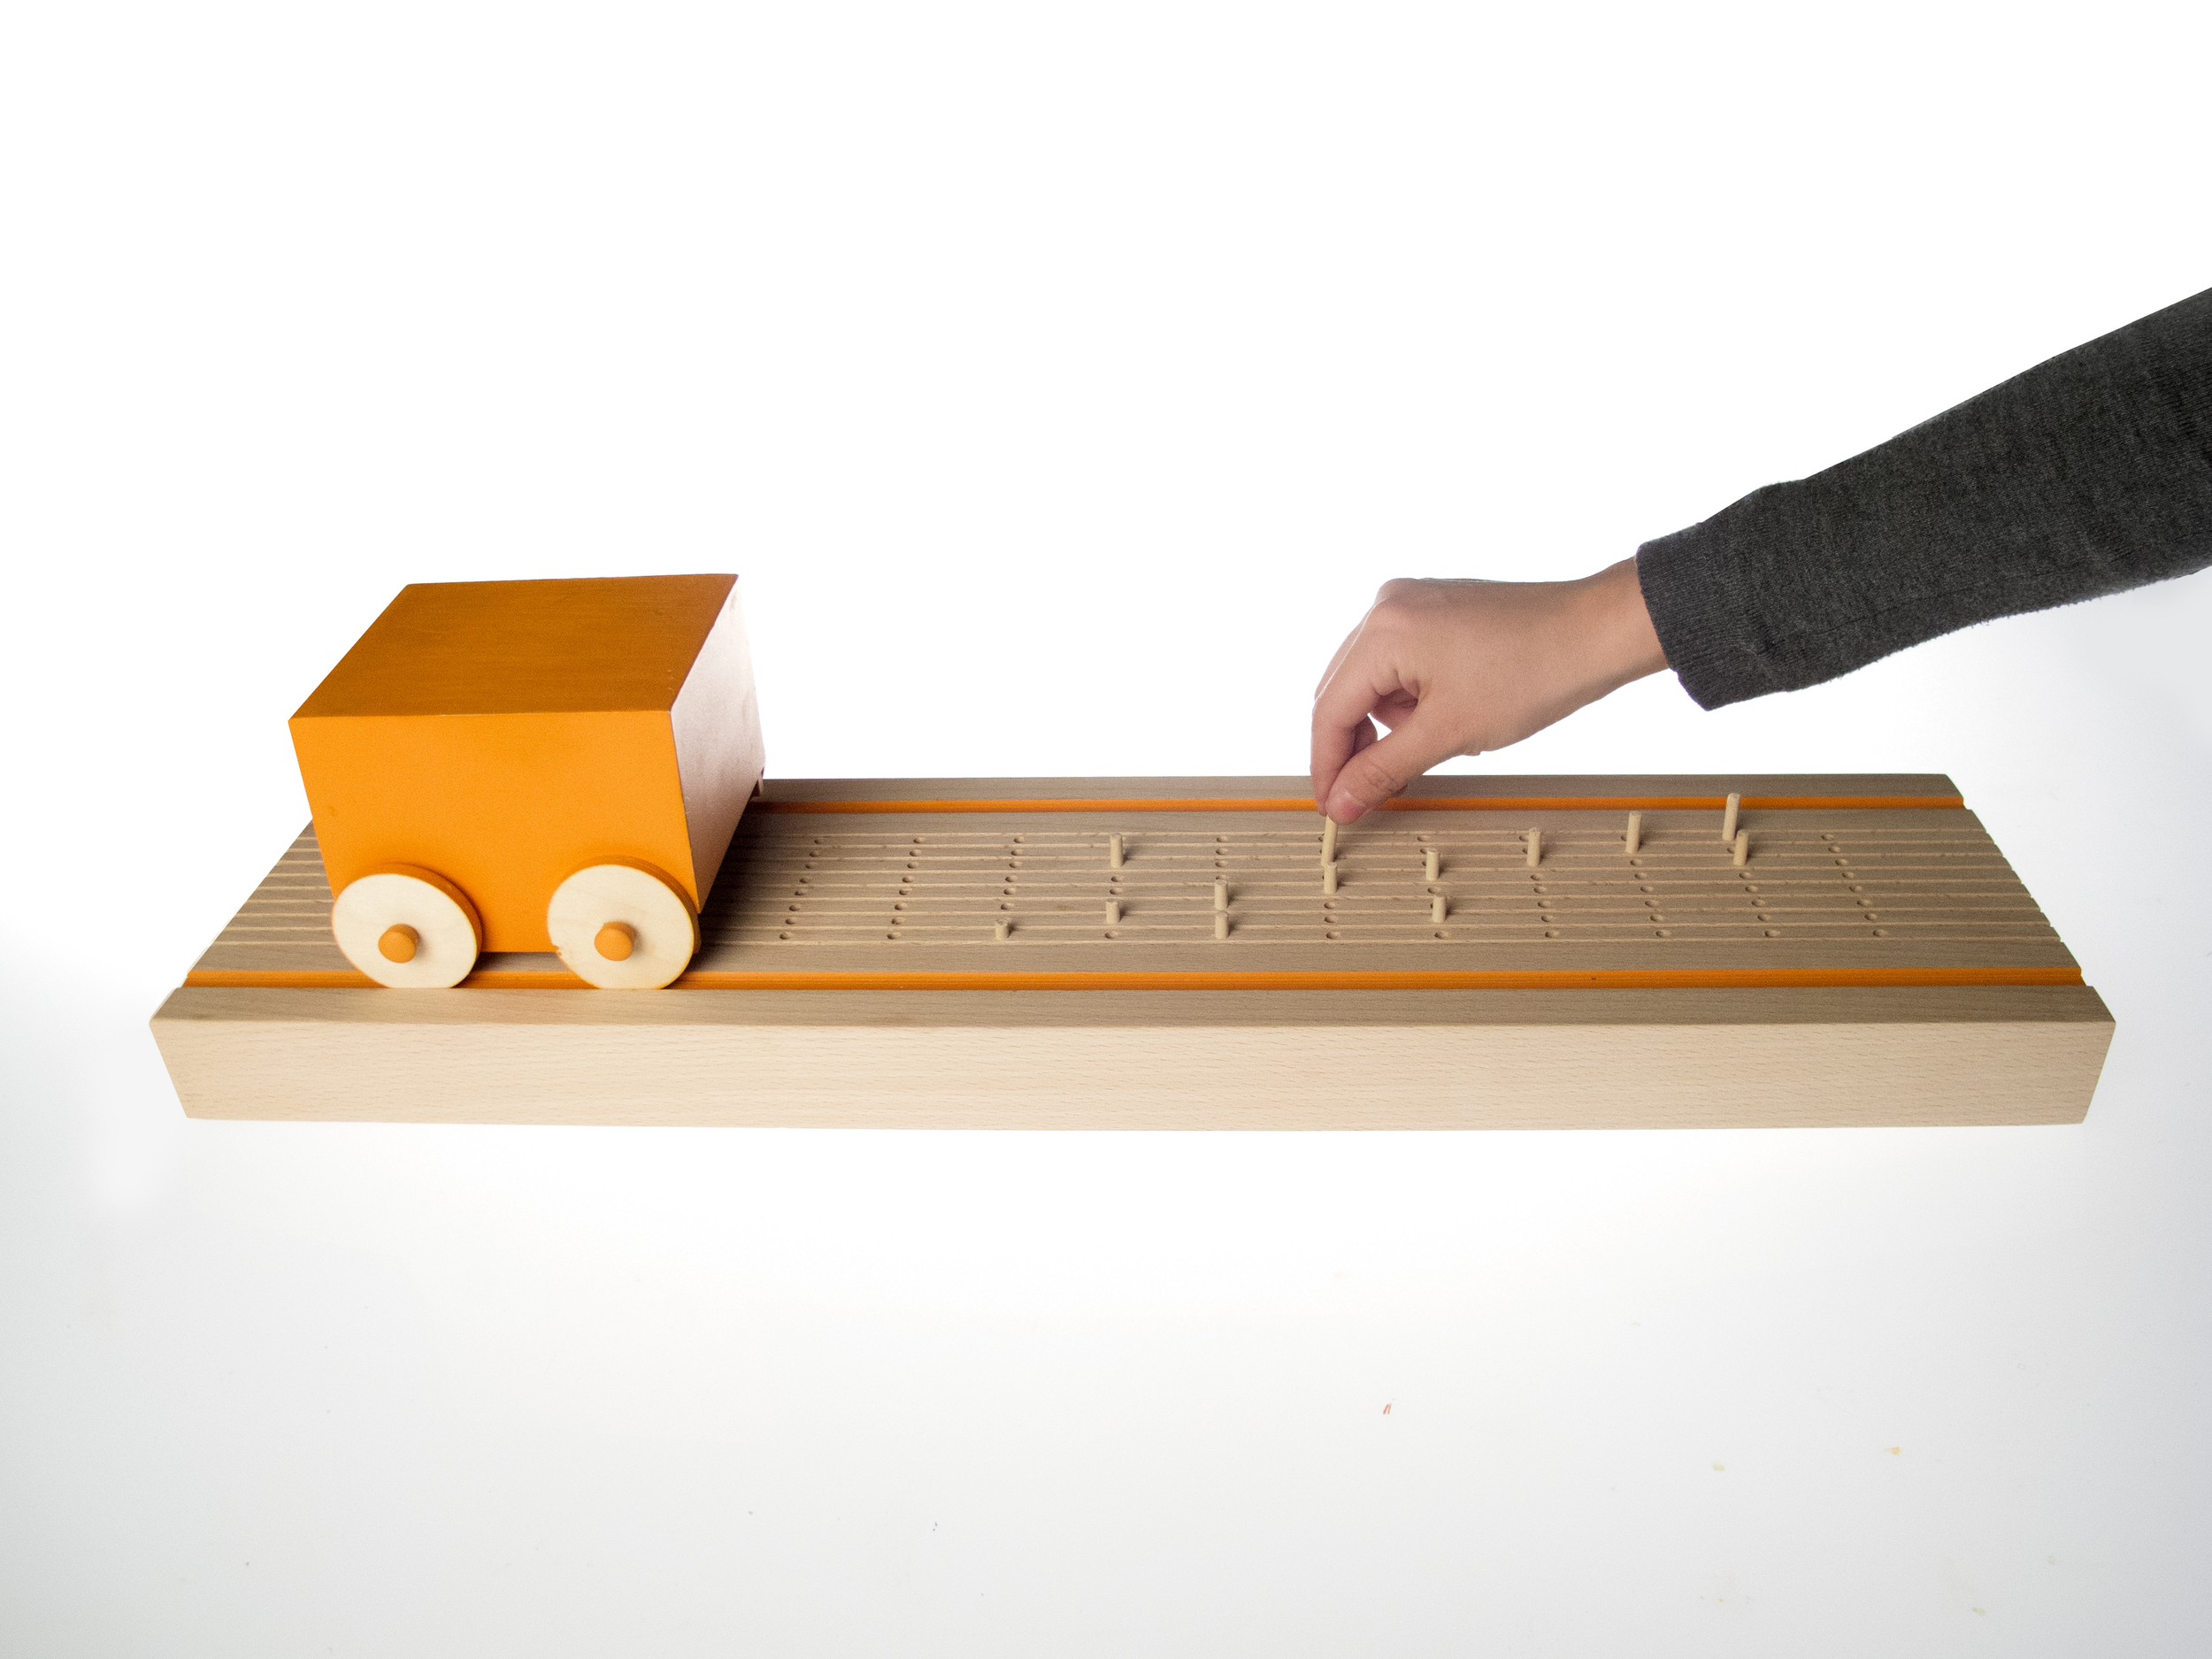 Insert pegs on track according to a full octave scale